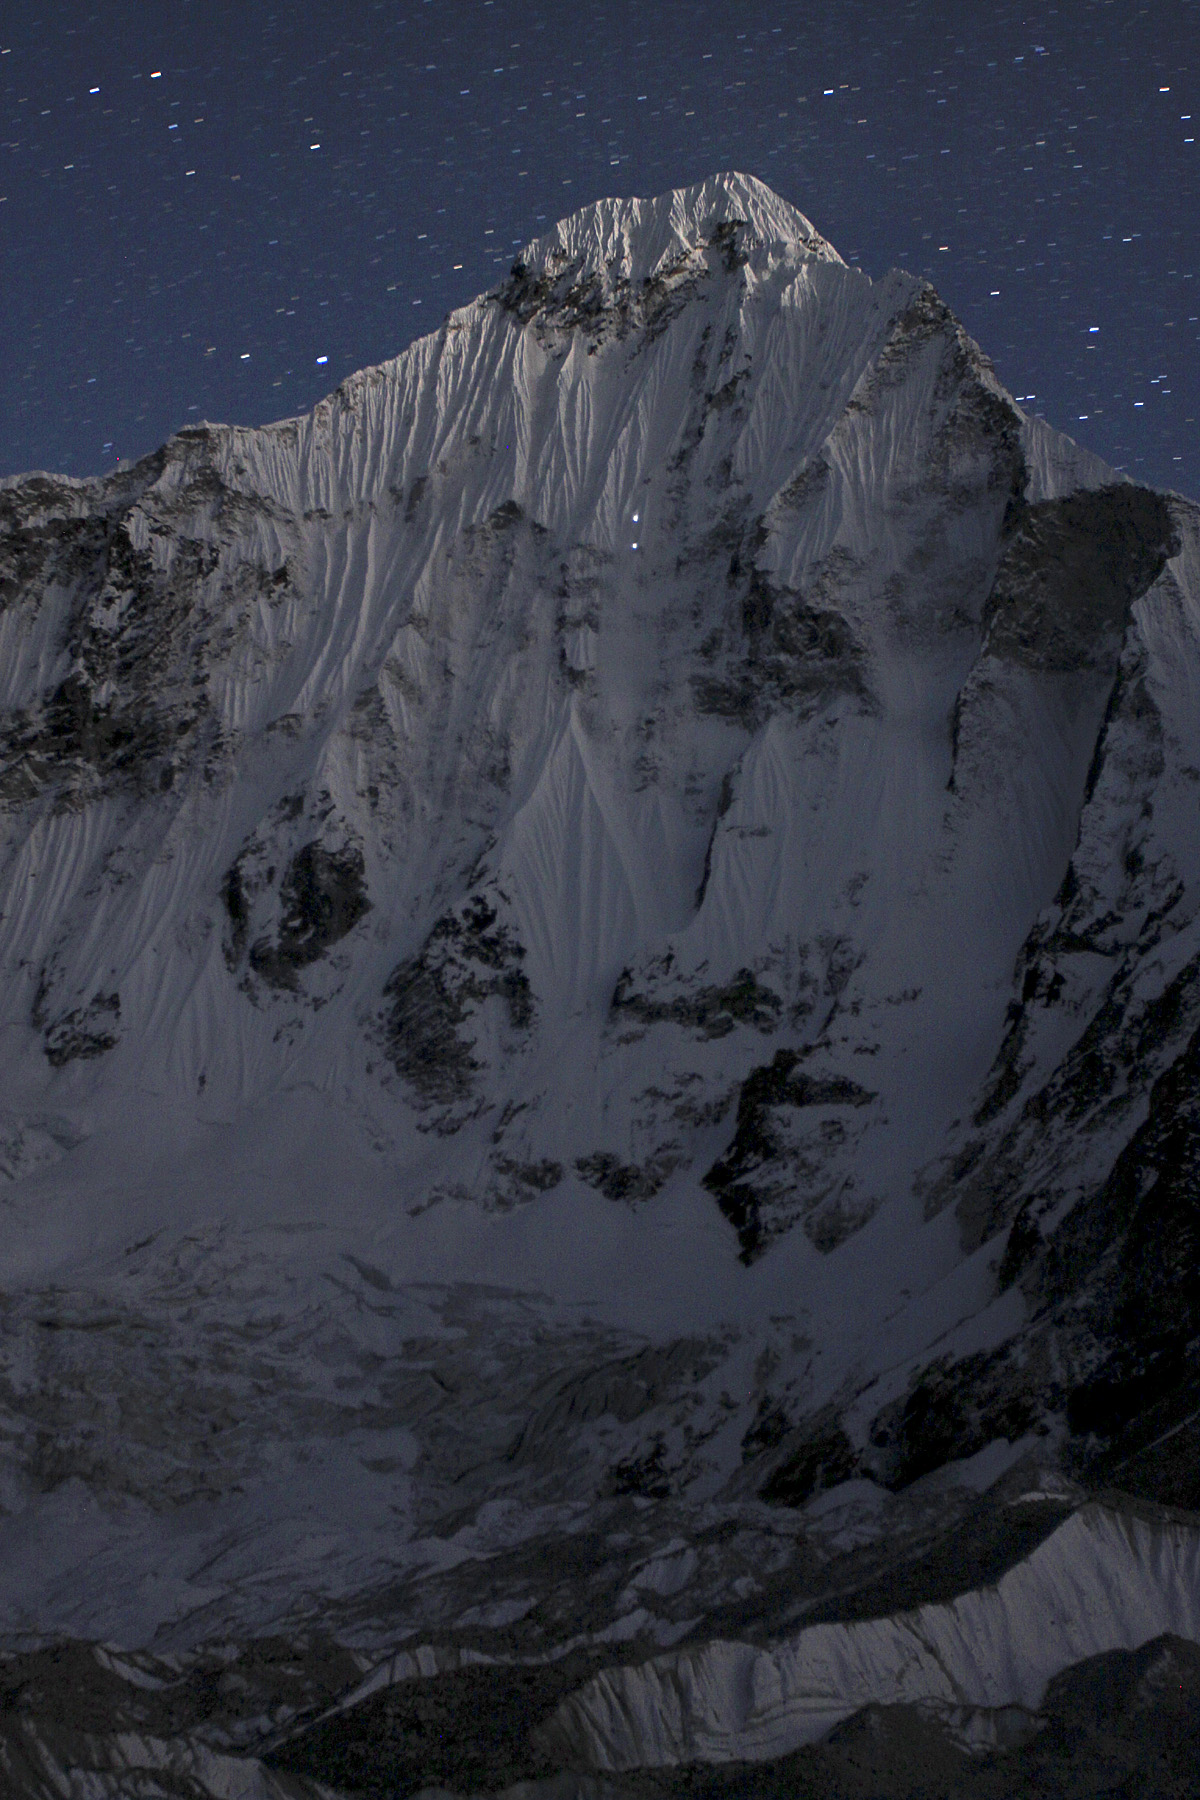 North face of Melanphulan seen at night from base camp. Lights from headtorches of two climbers are visible in upper third.